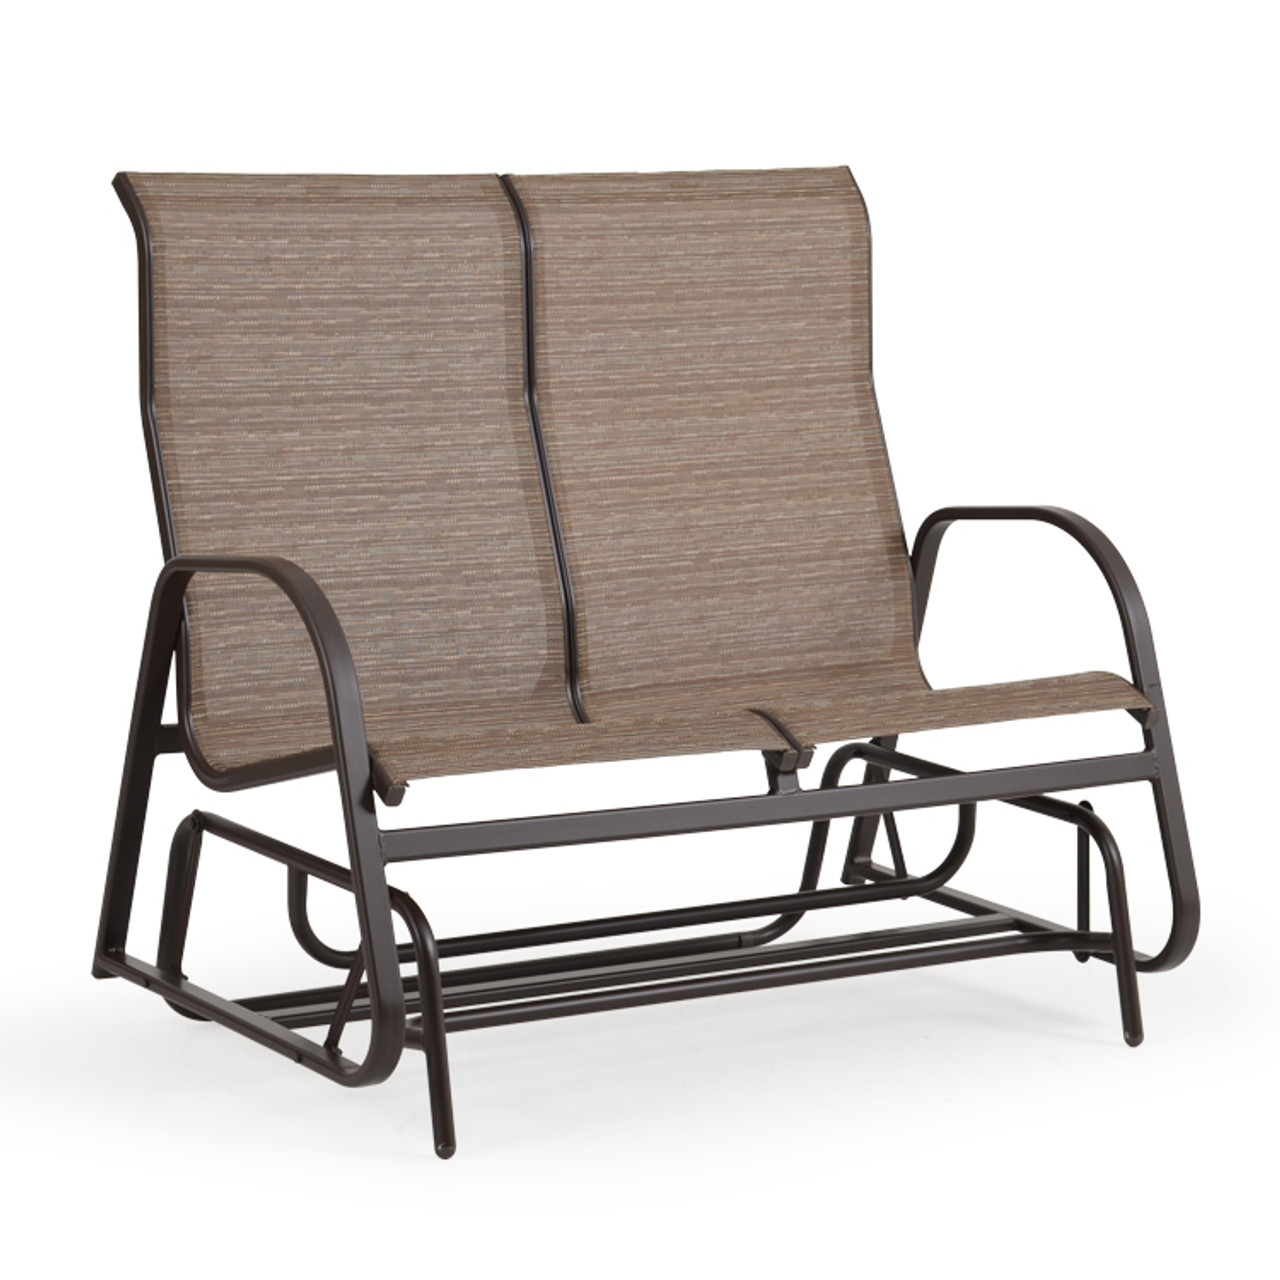 Patio Furniture Loveseat Glider.Outer Banks Outdoor High Back Loveseat Glider